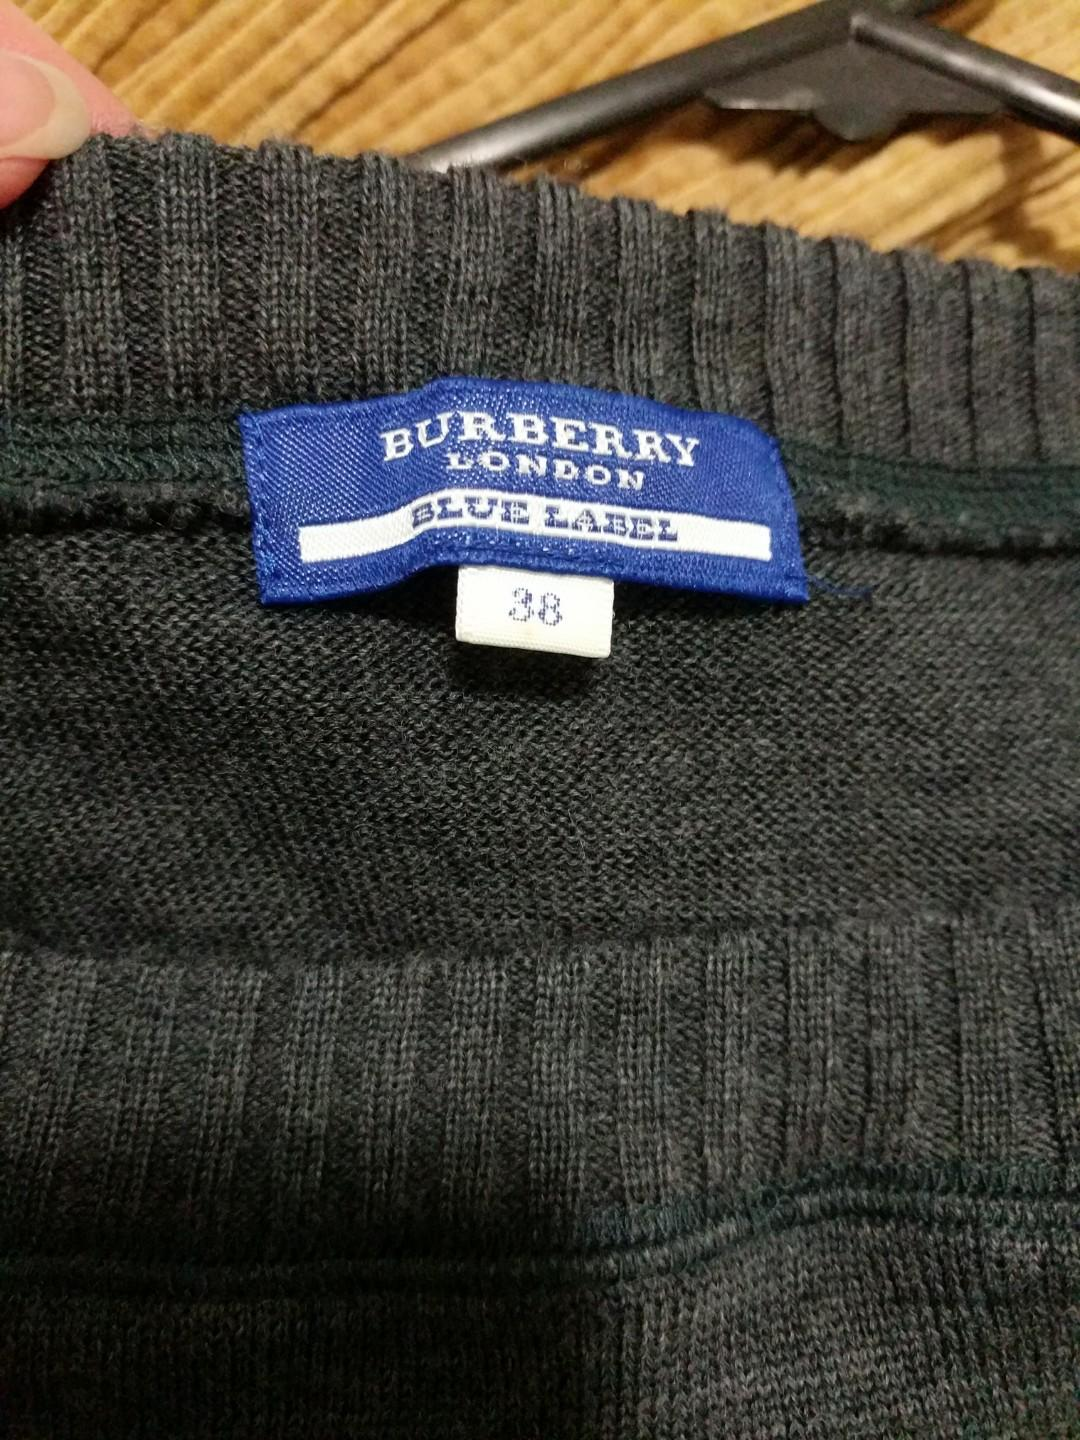 Burberry Blue label ash grey wool knitted jumper / sweater